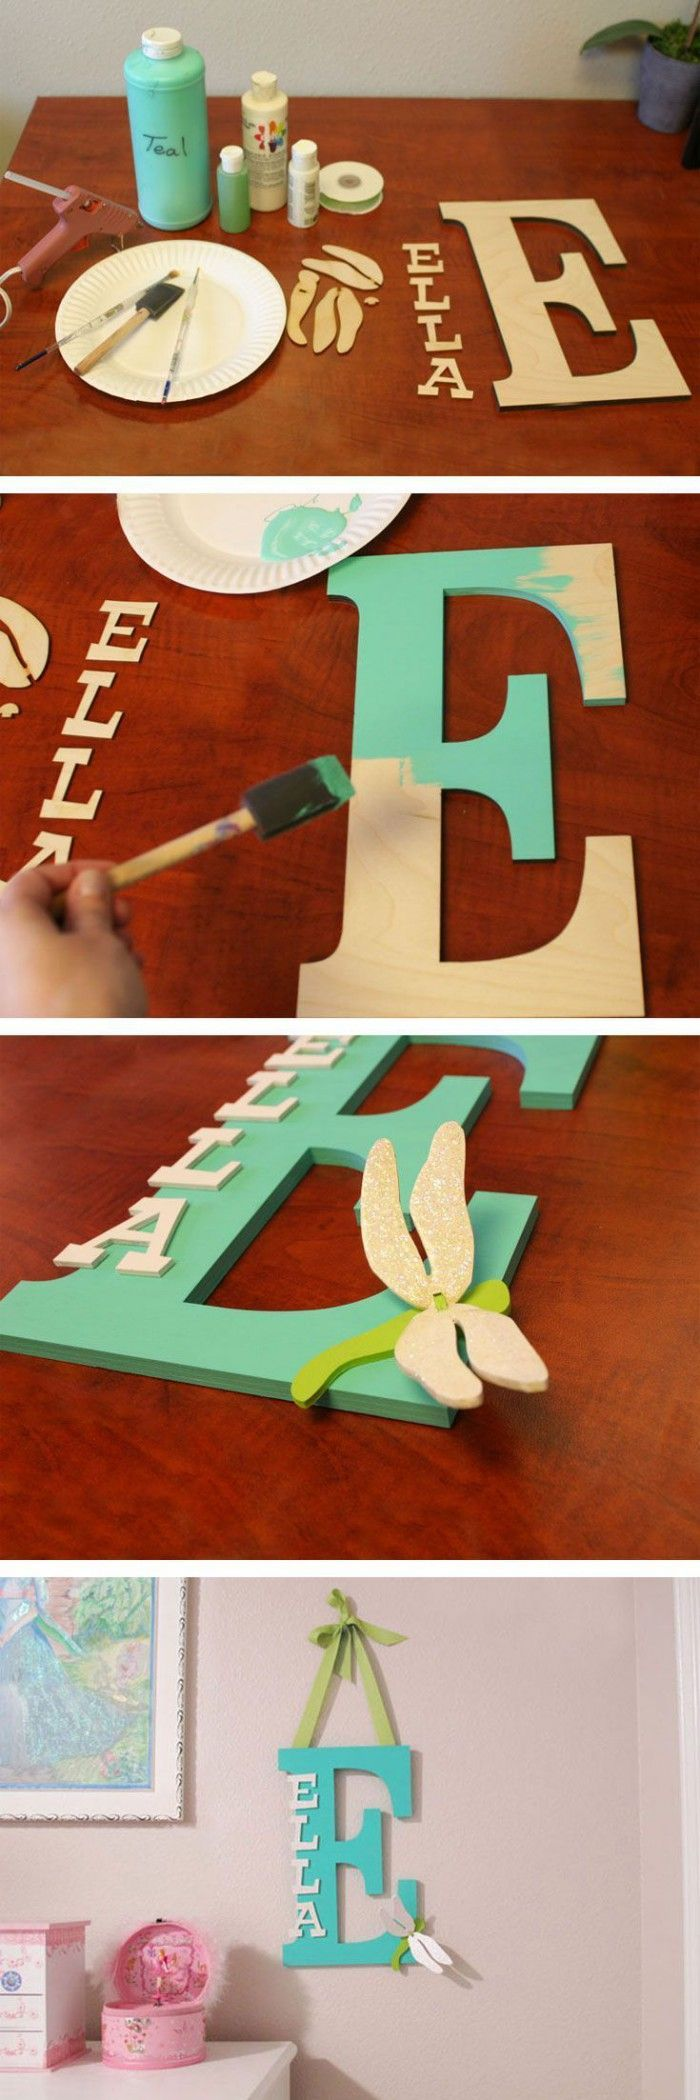 hanging wooden letters 25 best ideas about hanging wooden letters on 22080 | ba14251d40daf6f0214d505f206f57d2 bedroom doors dorm room doors